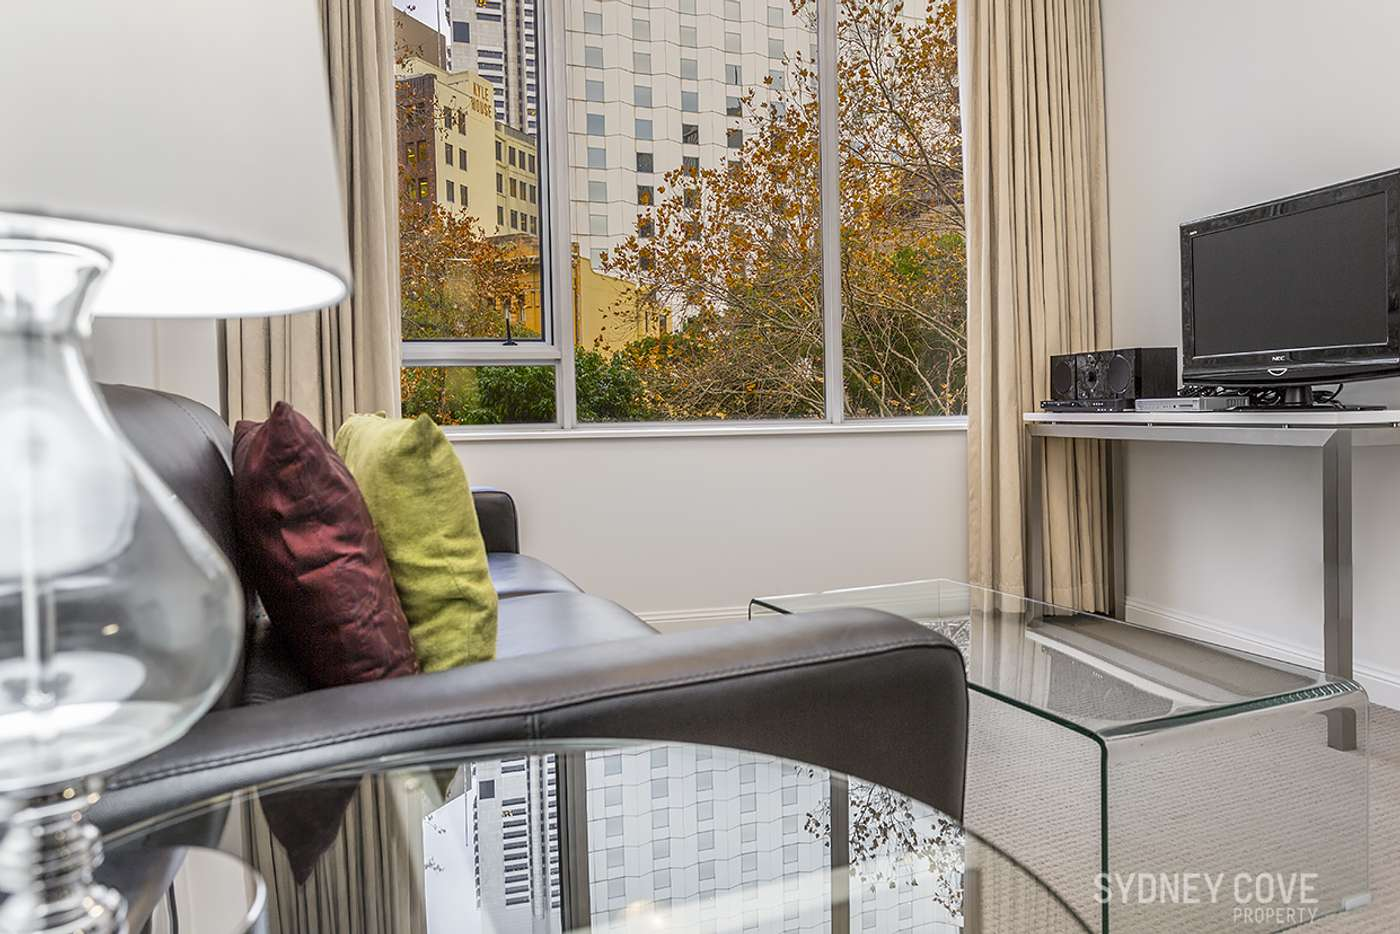 Main view of Homely apartment listing, 38 Bridge St, Sydney NSW 2000